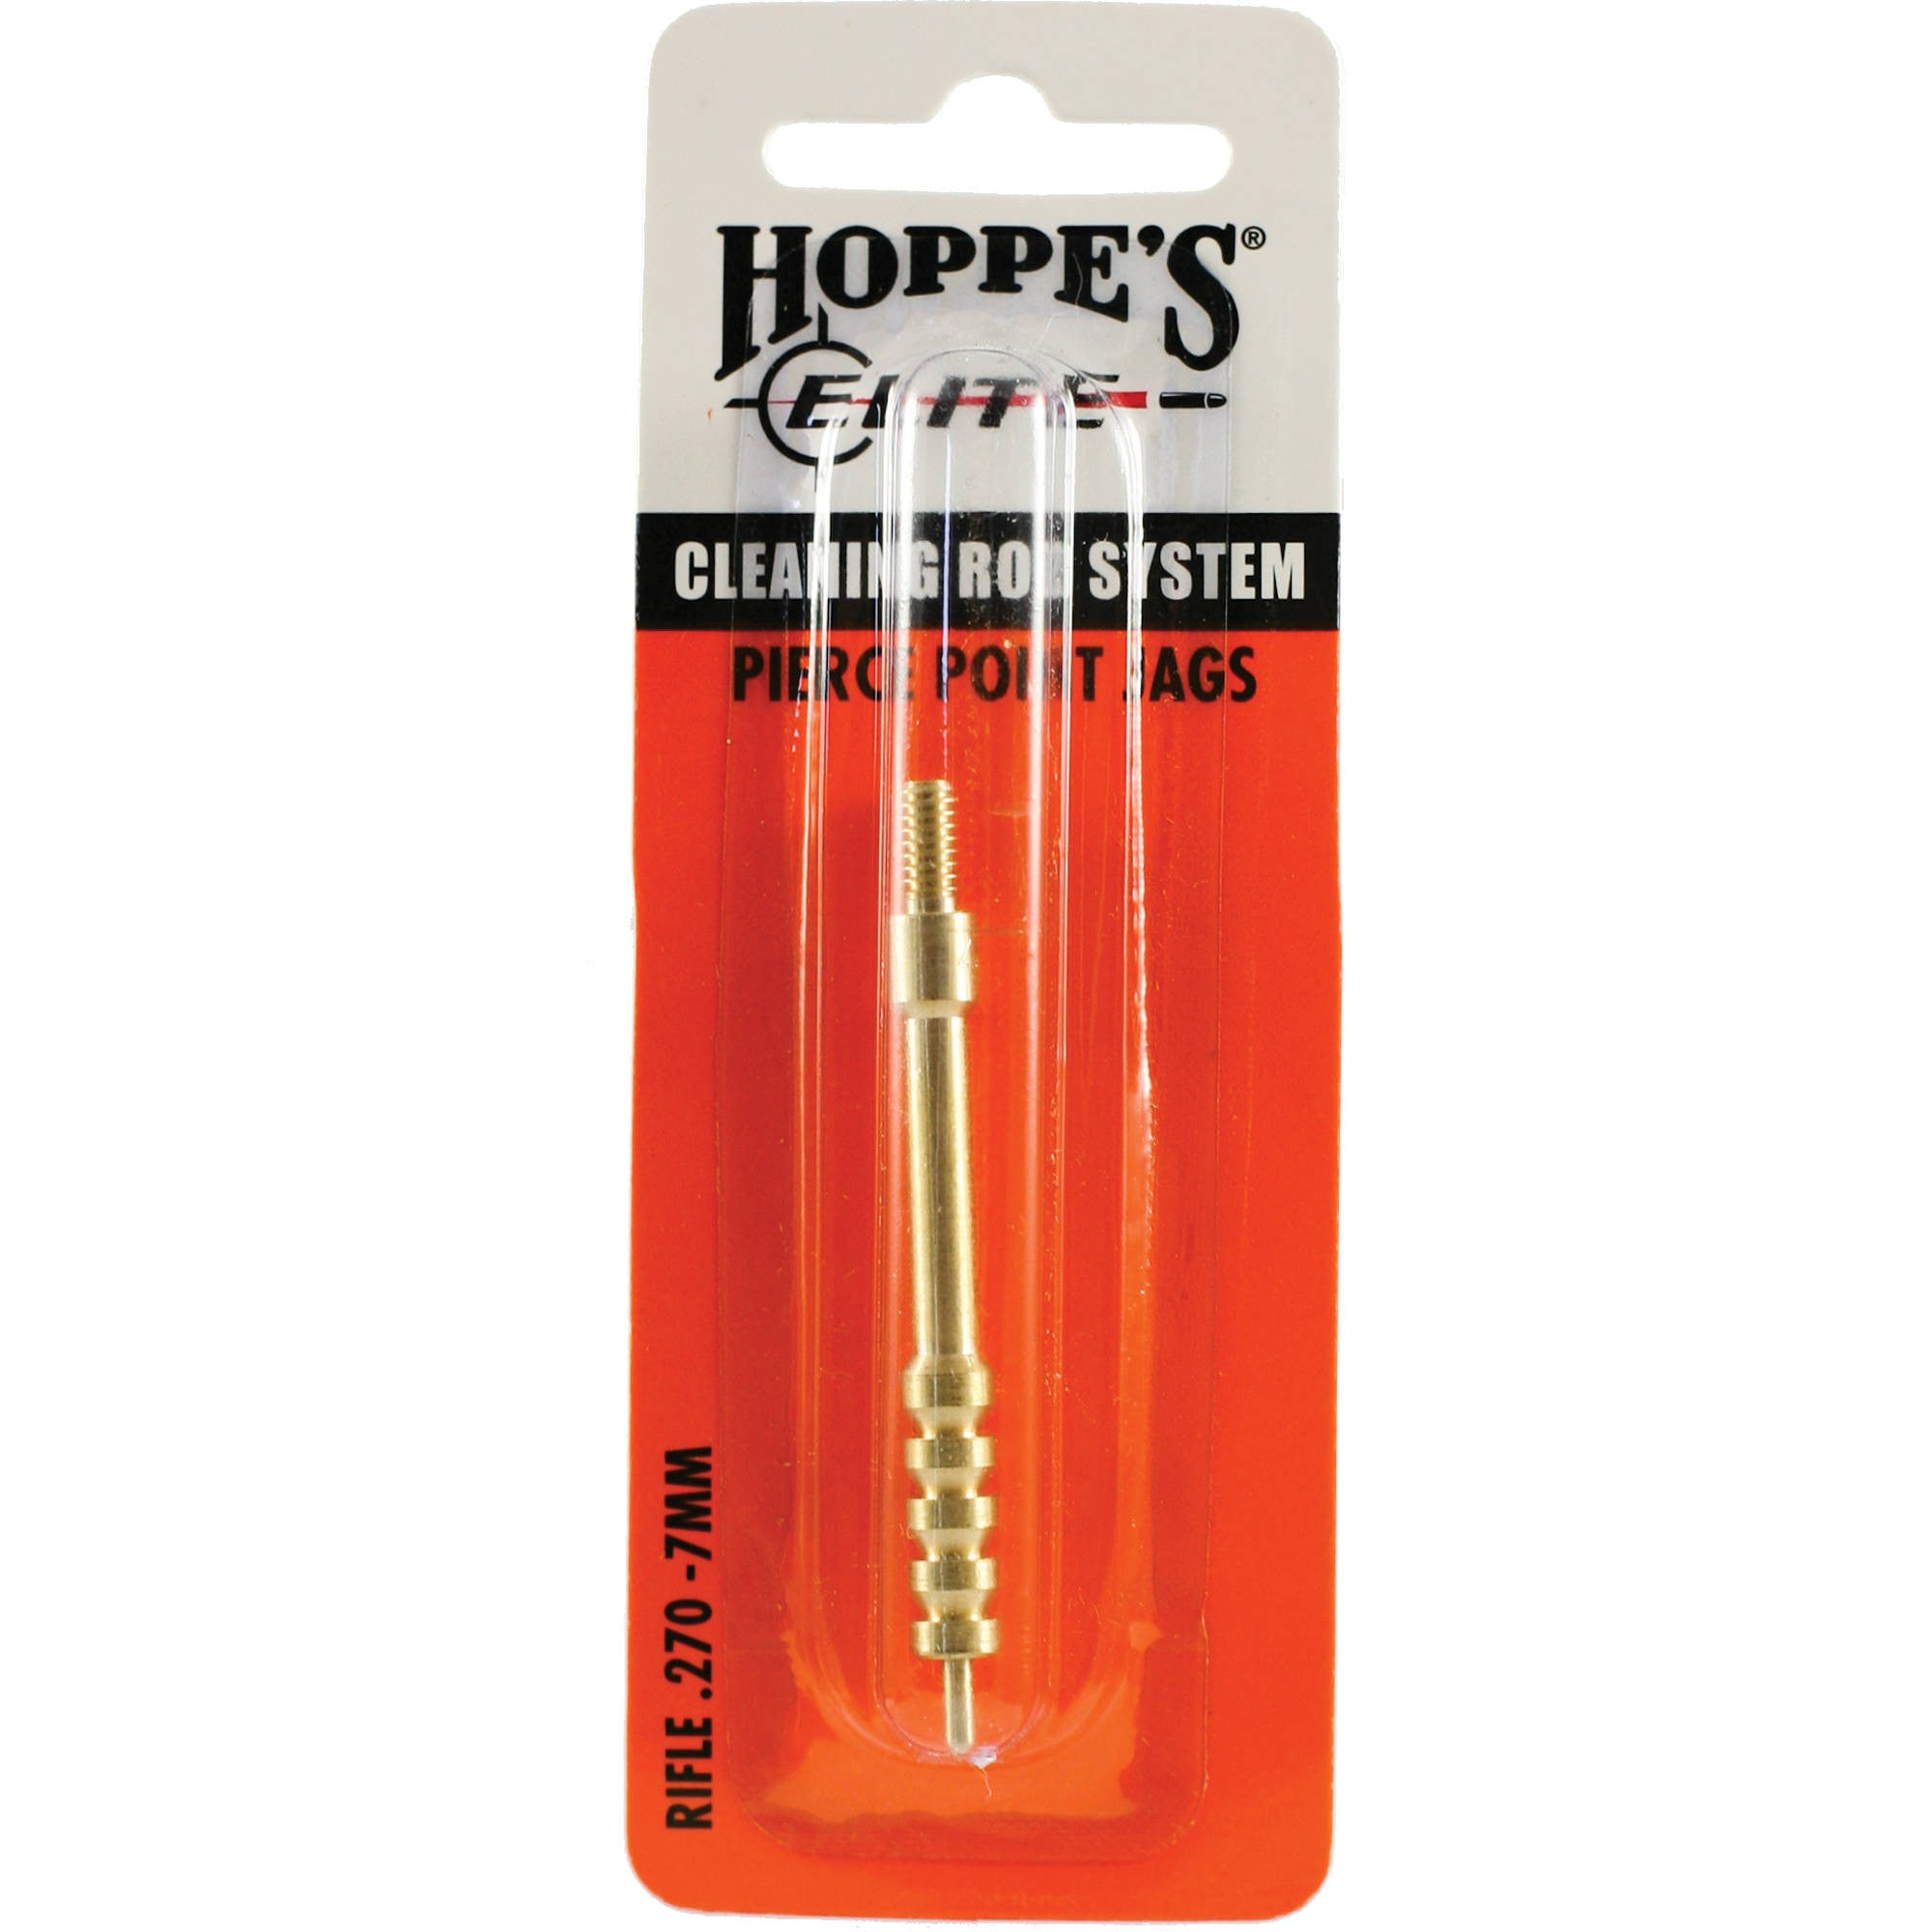 Hoppes Elite pierce joint jags .270-7MM-High Falls Outfitters